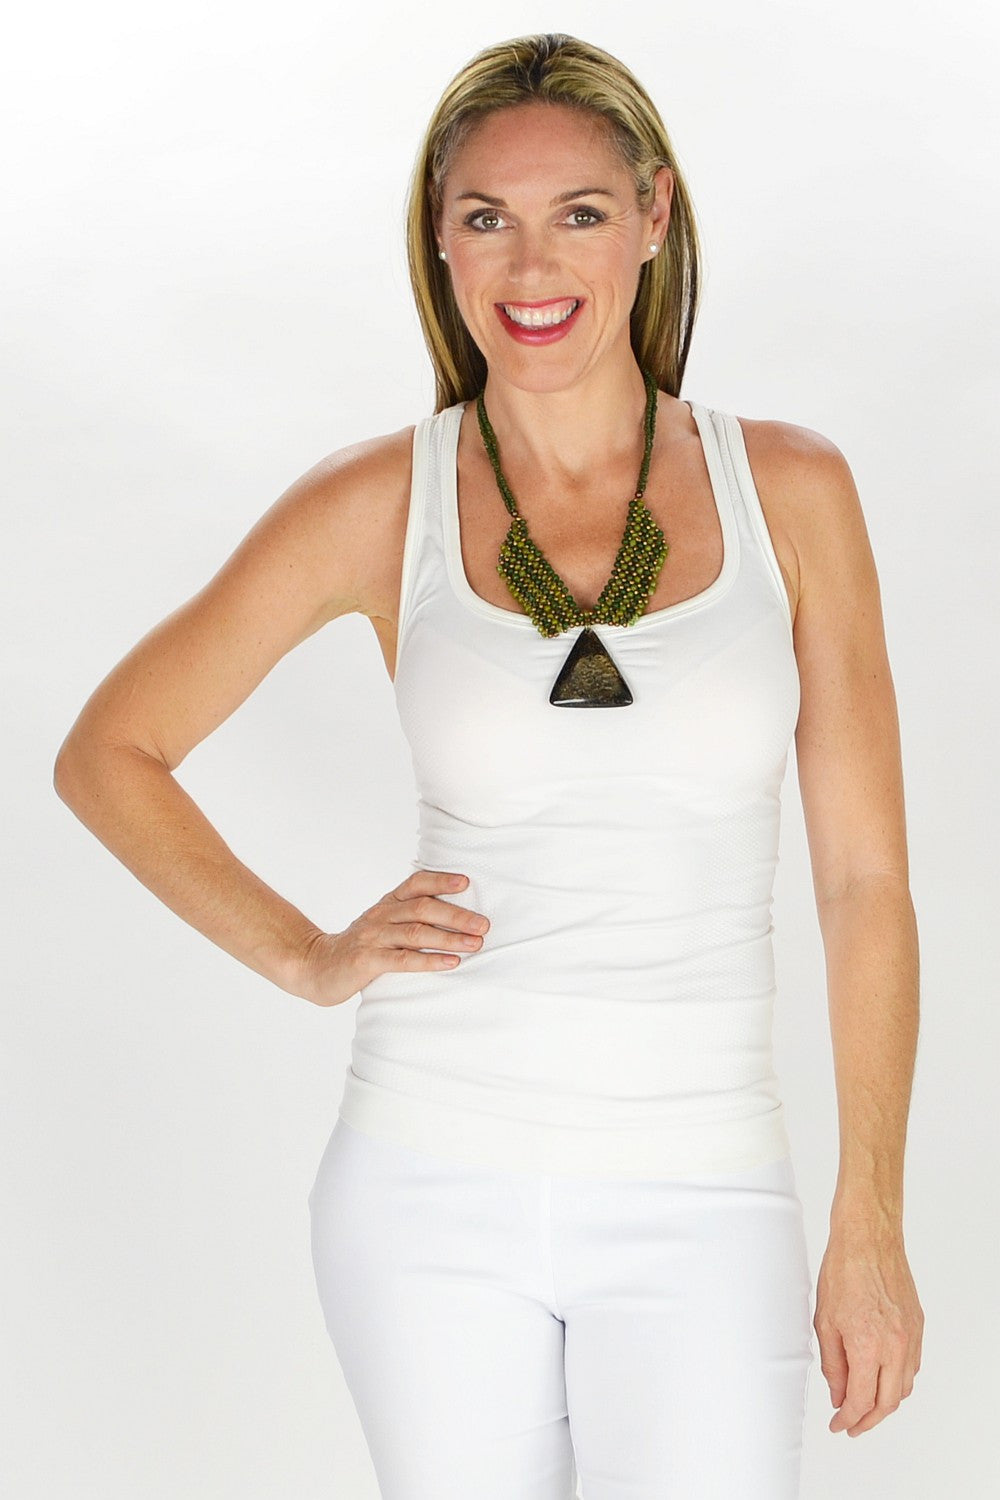 Golden Pendant Necklace - at I Love Tunics @ www.ilovetunics.com = Number One! Tunics Destination